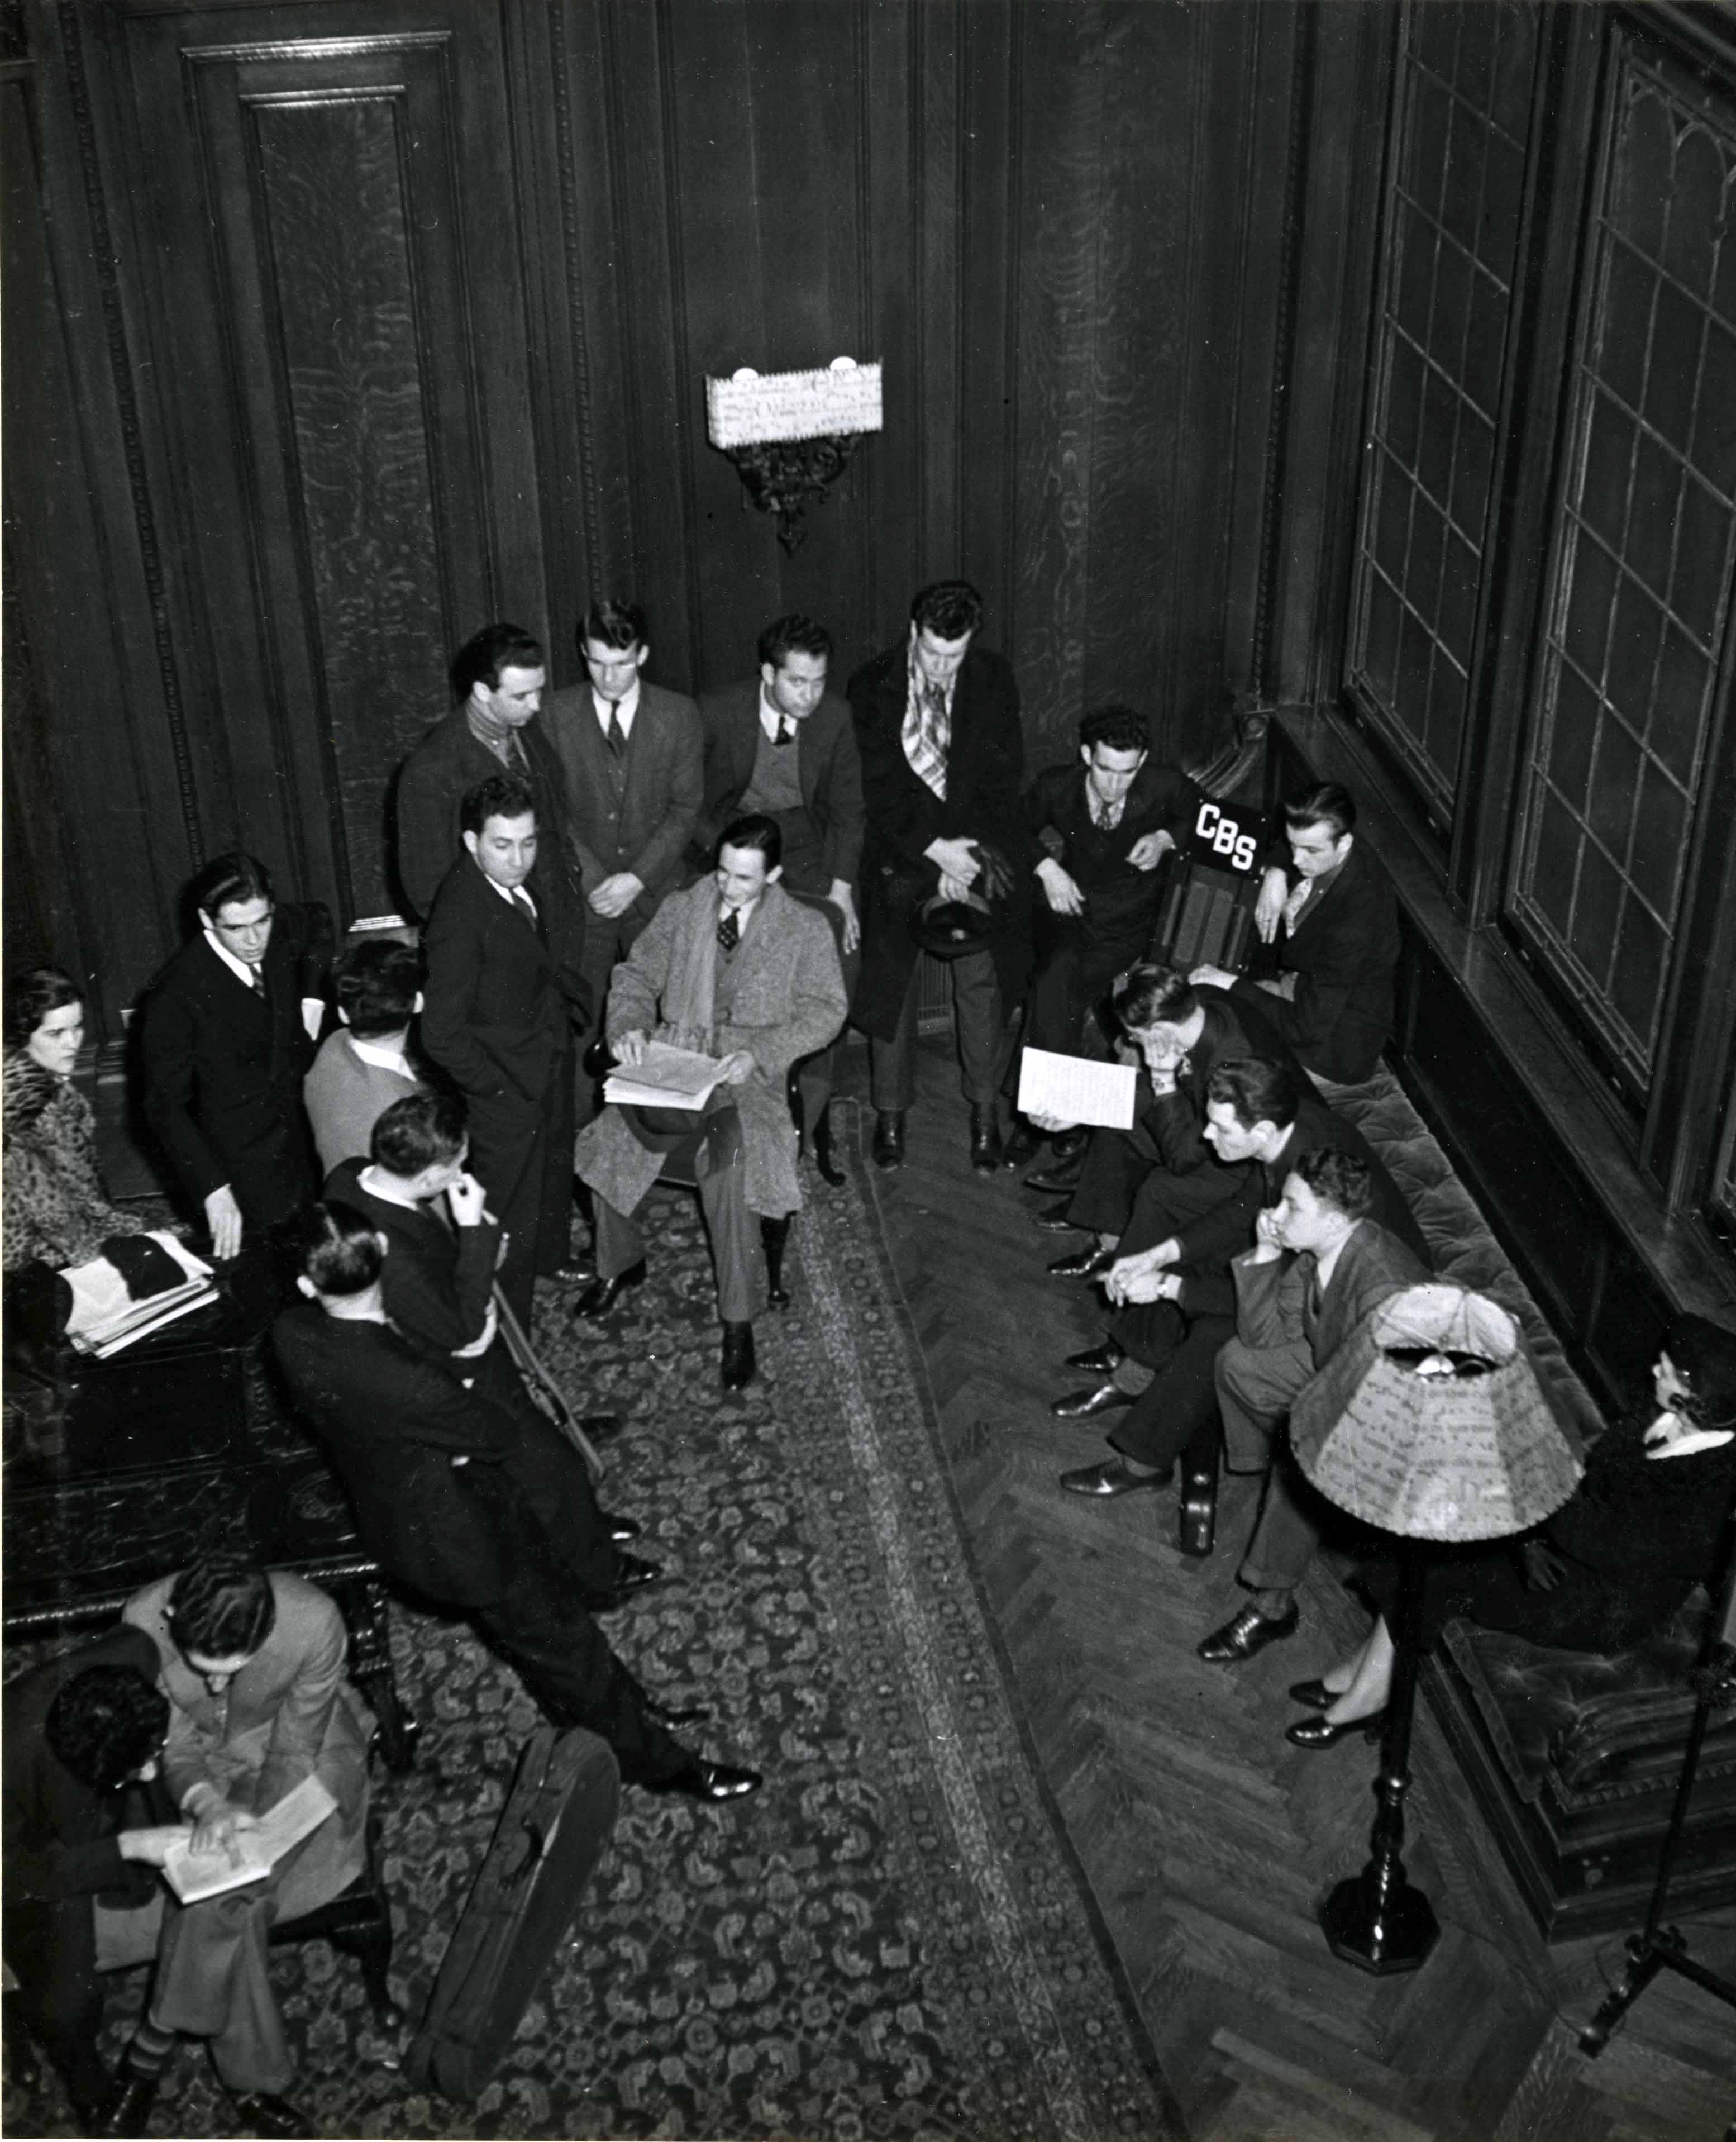 Students listening to the weekly Curtis radio broadcast in the Common Room, circa 1938